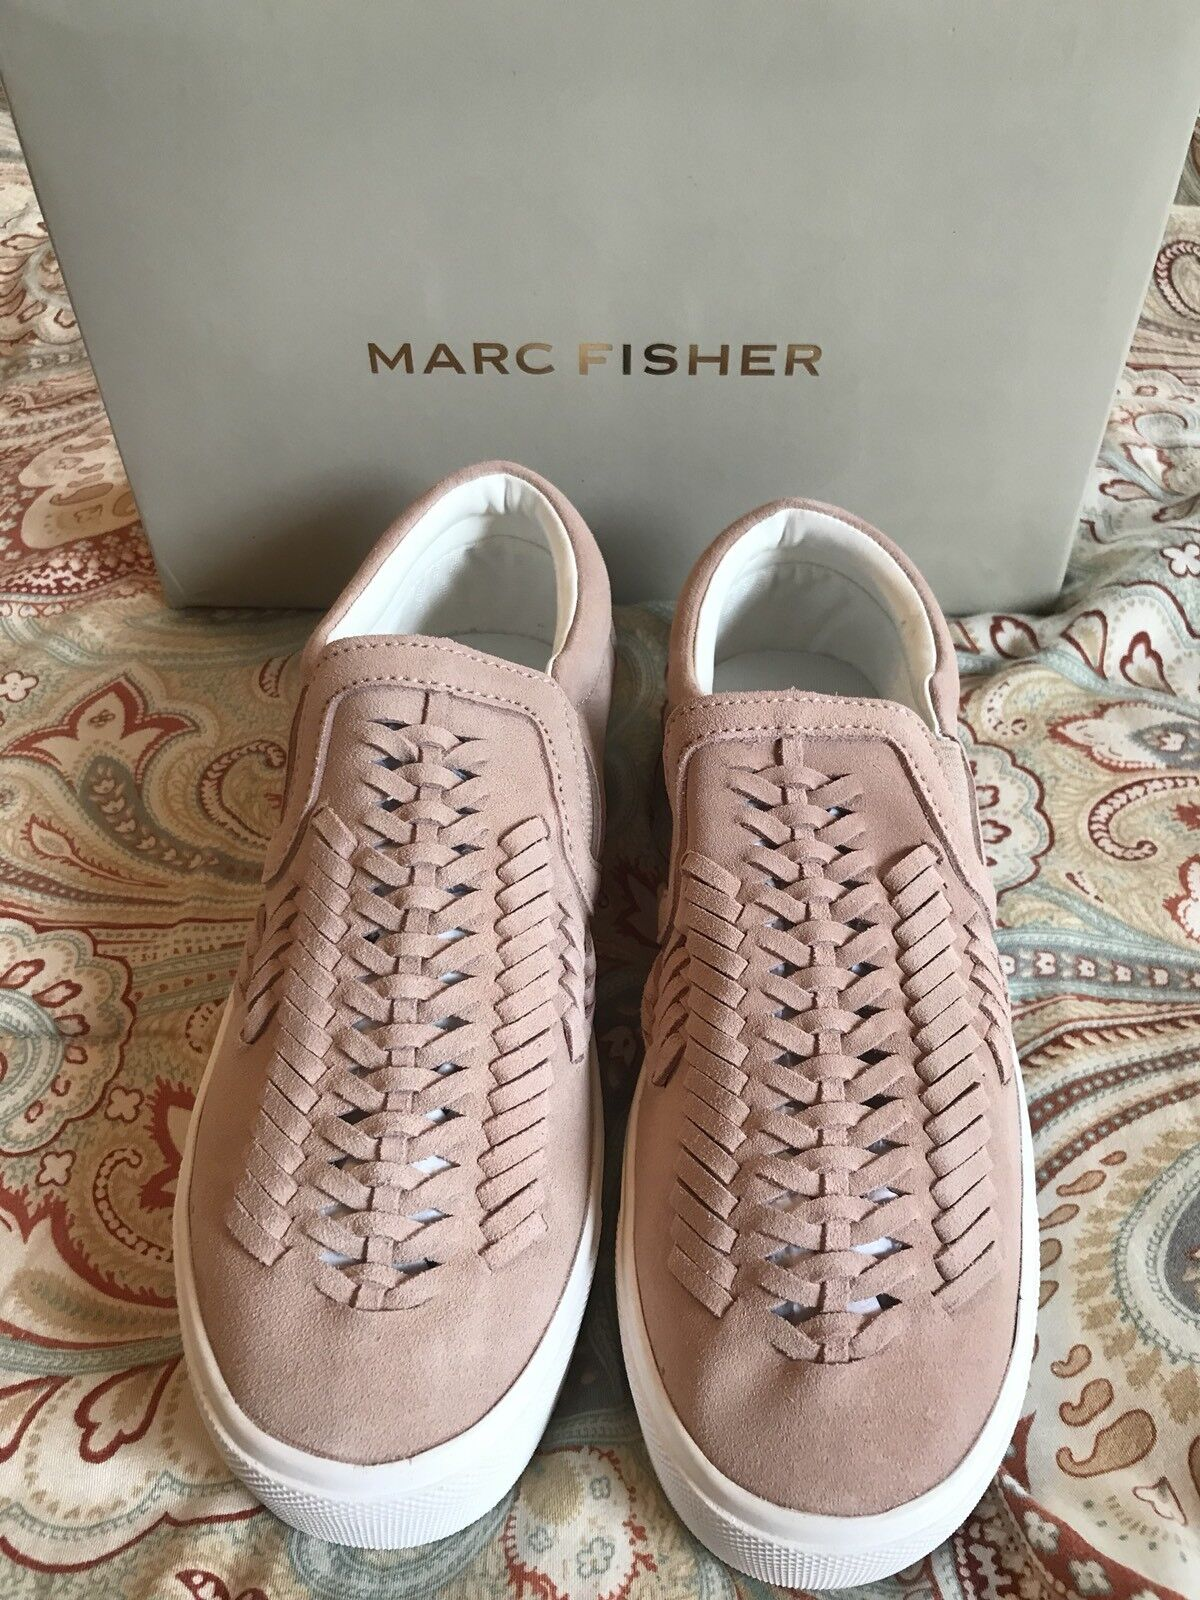 NEW Marc Fisher Dexie2 Sz 5 Tennis Shoes Loafers Light Pink Suede Blush Woven